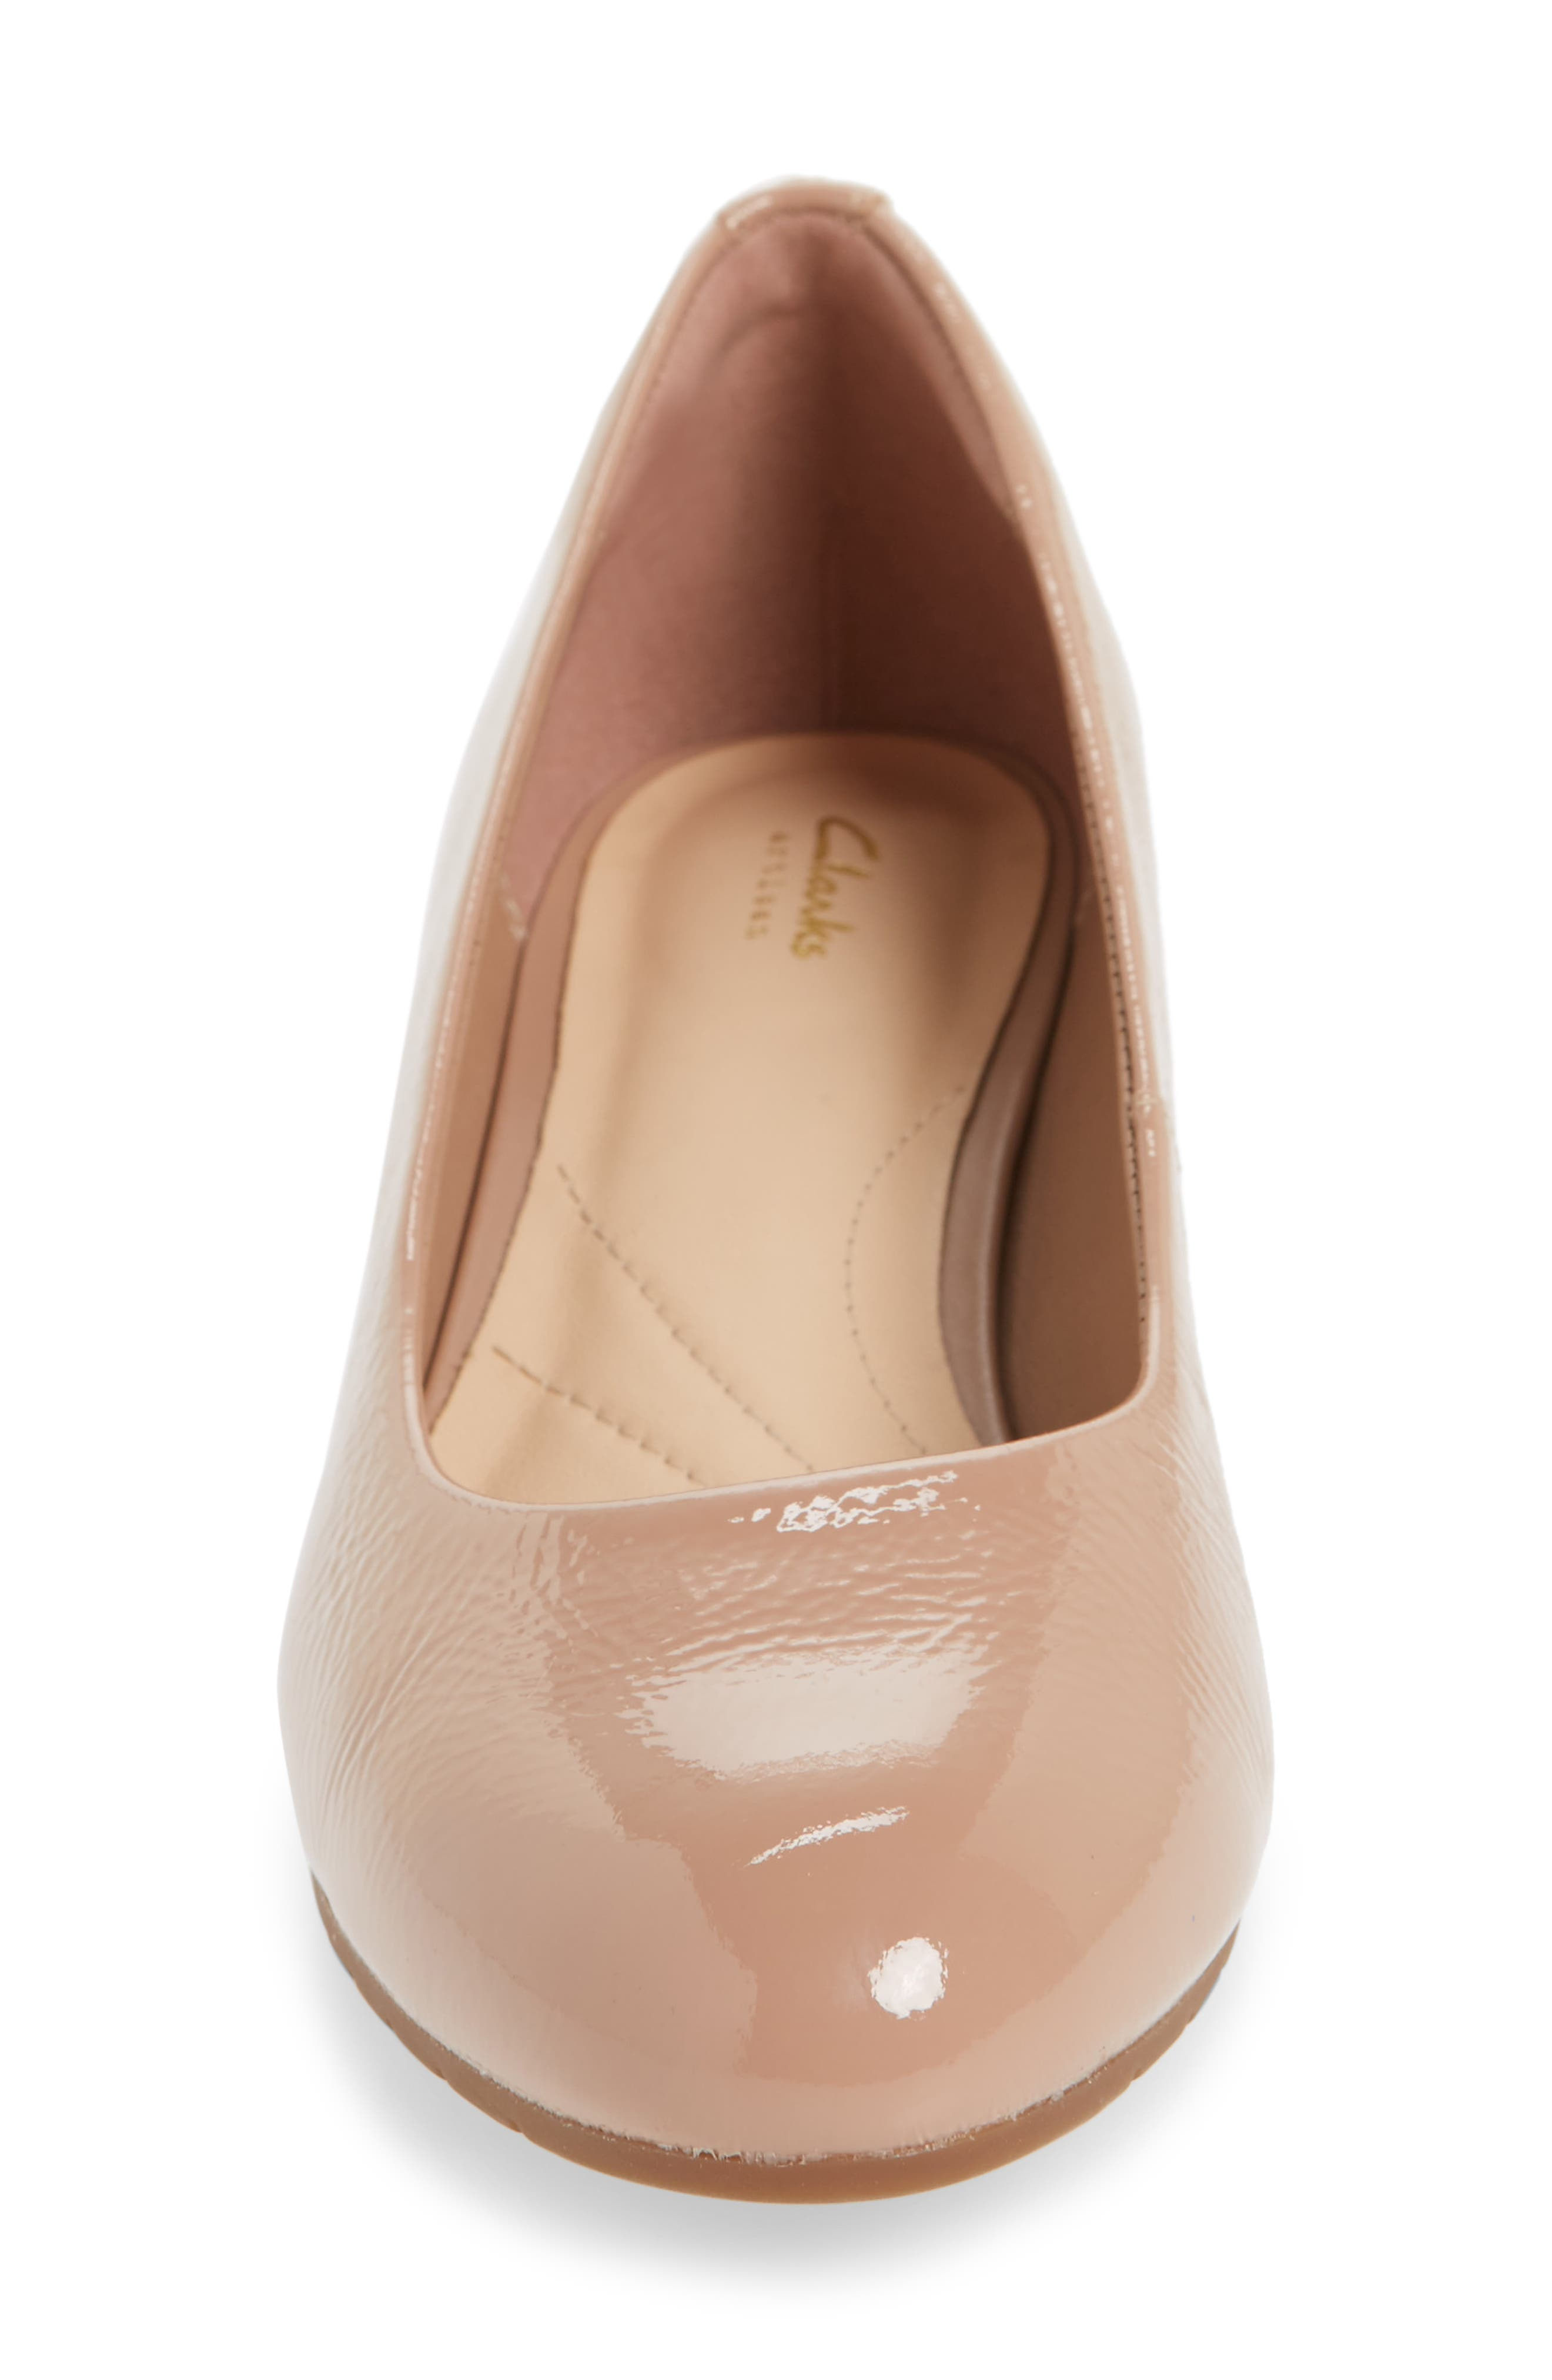 Vendra Bloom Wedge Pump,                             Alternate thumbnail 4, color,                             Beige Patent Leather